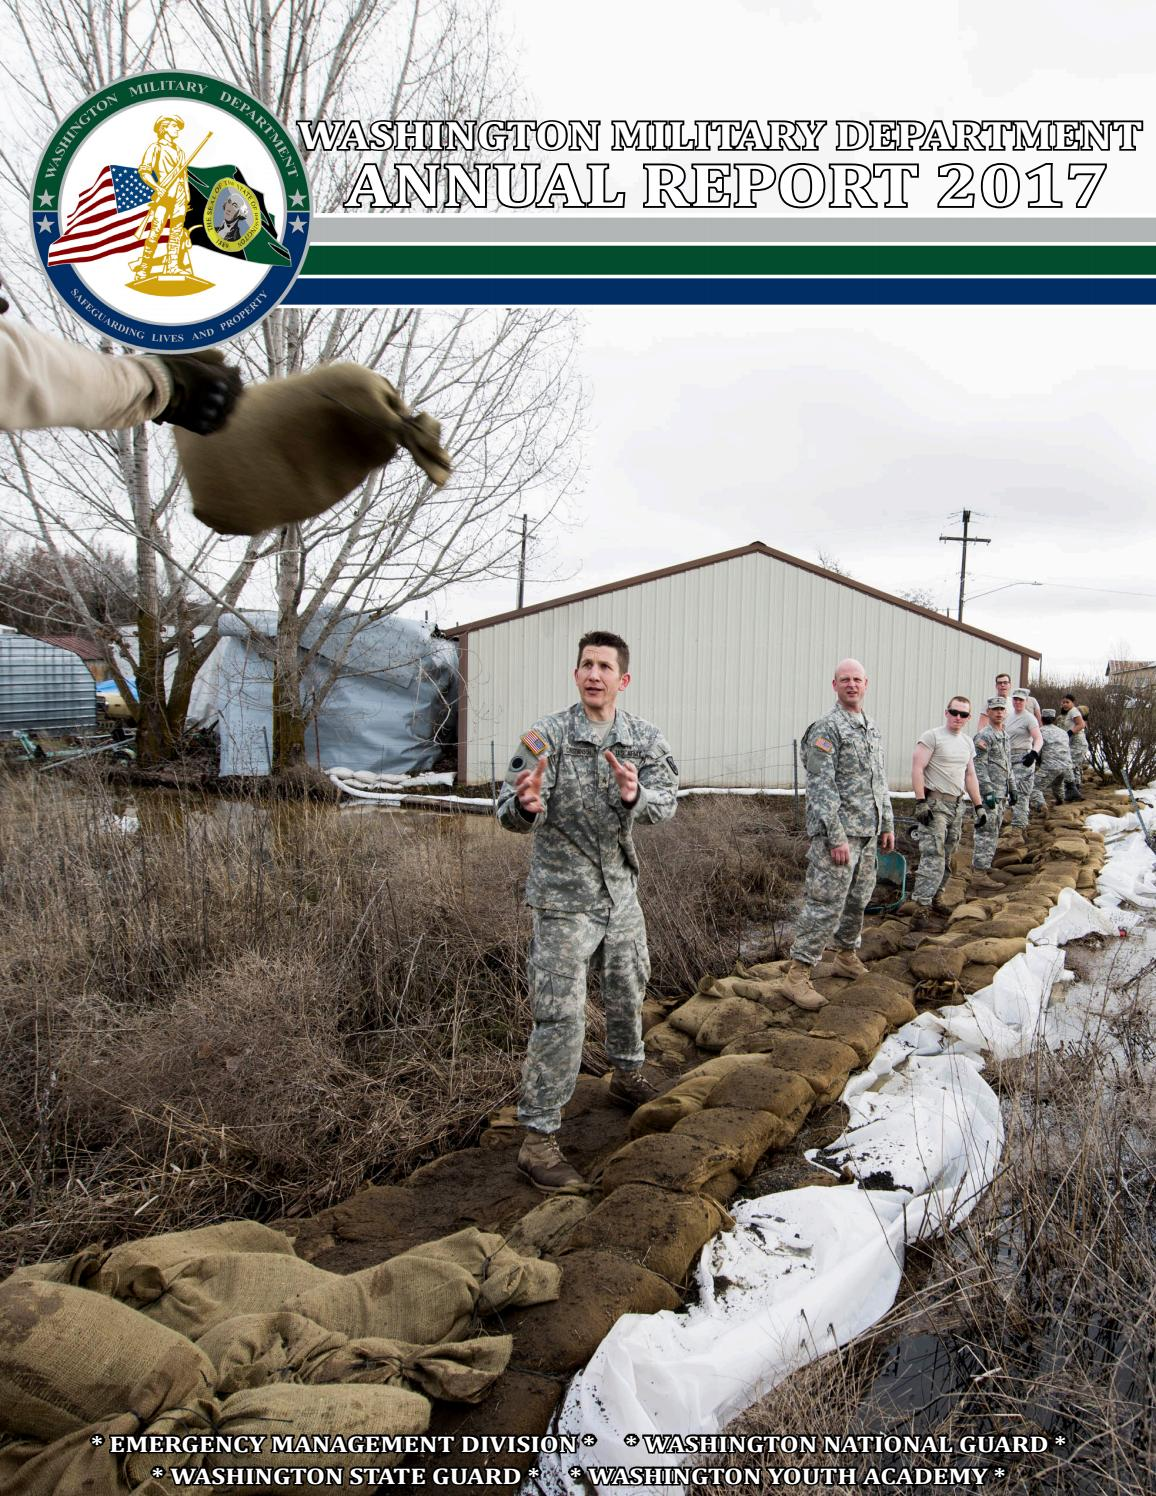 2017 Washington Military Department Annual Report by